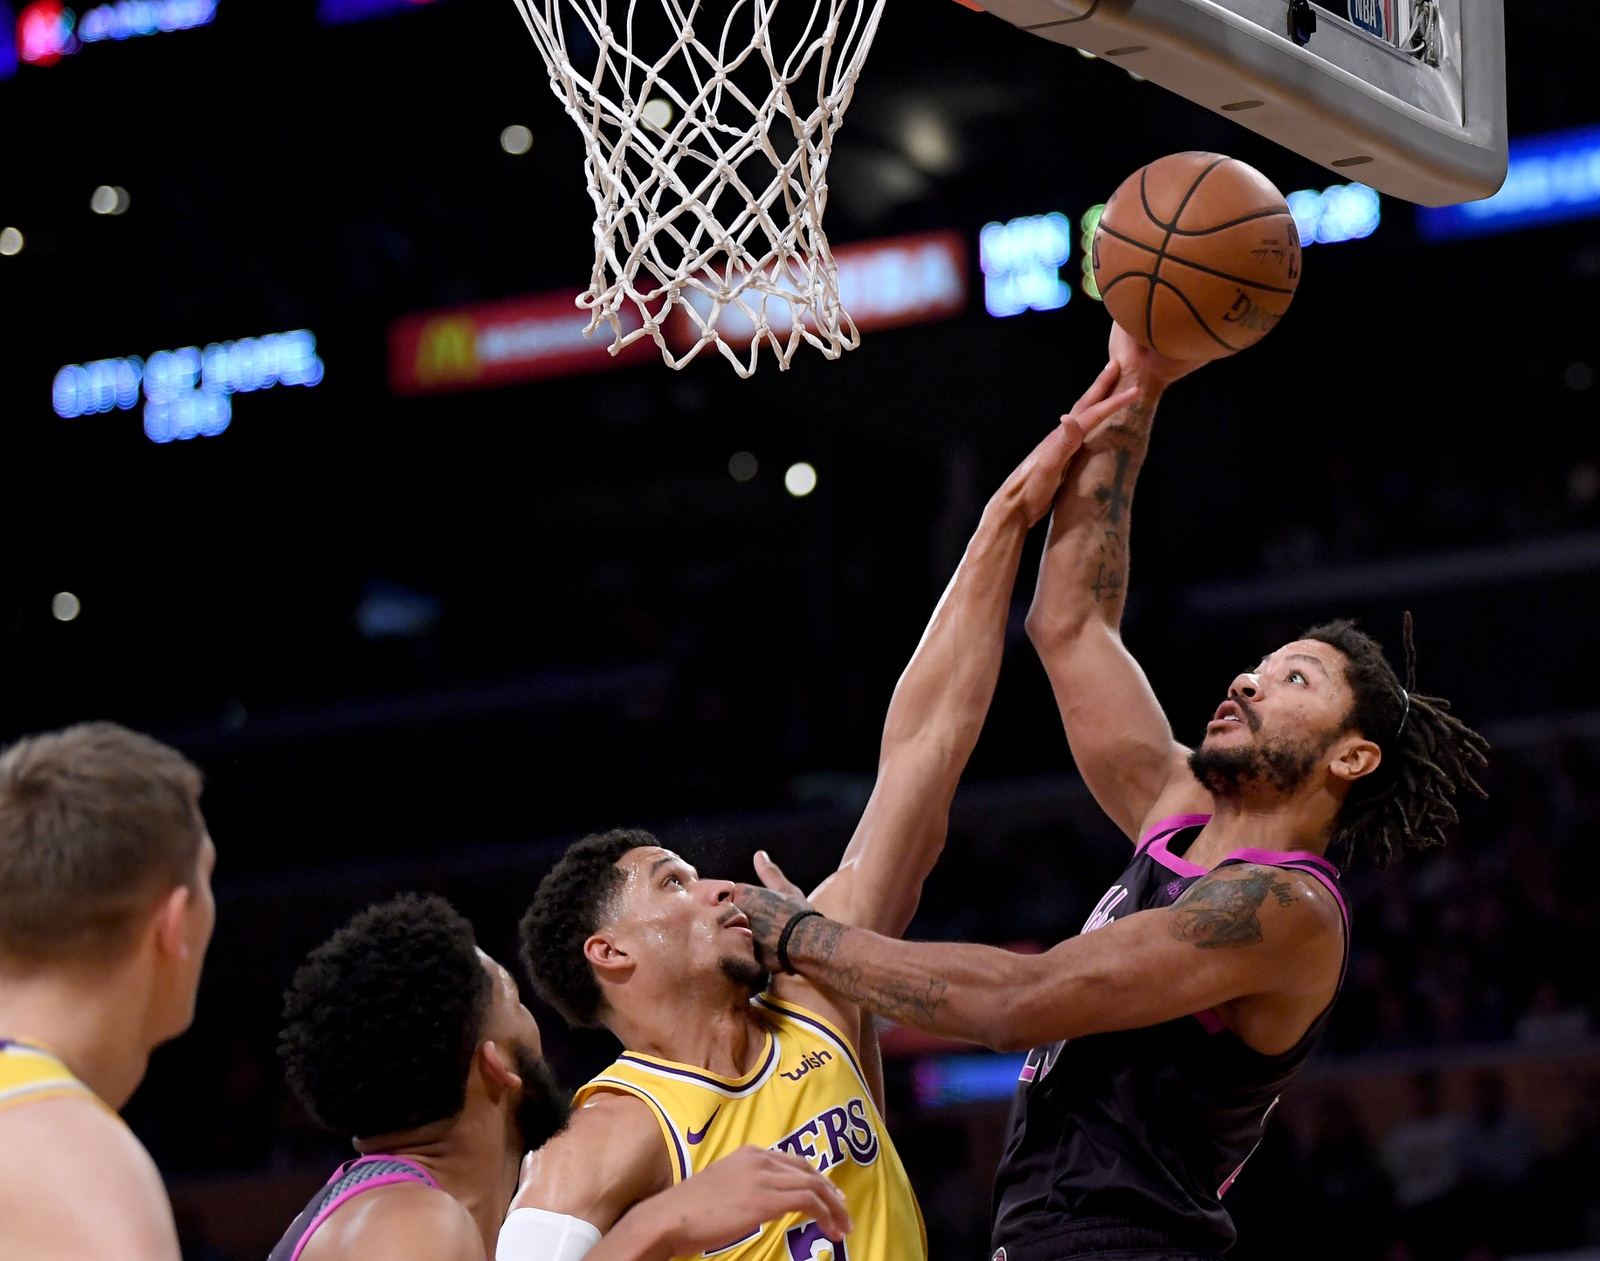 Derrick Rose #25 of the Minnesota Timberwolves attempts a shot over Josh Hart #3 of the Los Angeles Lakers during the first half at Staples Center on January 24, 2019 in Los Angeles, California.